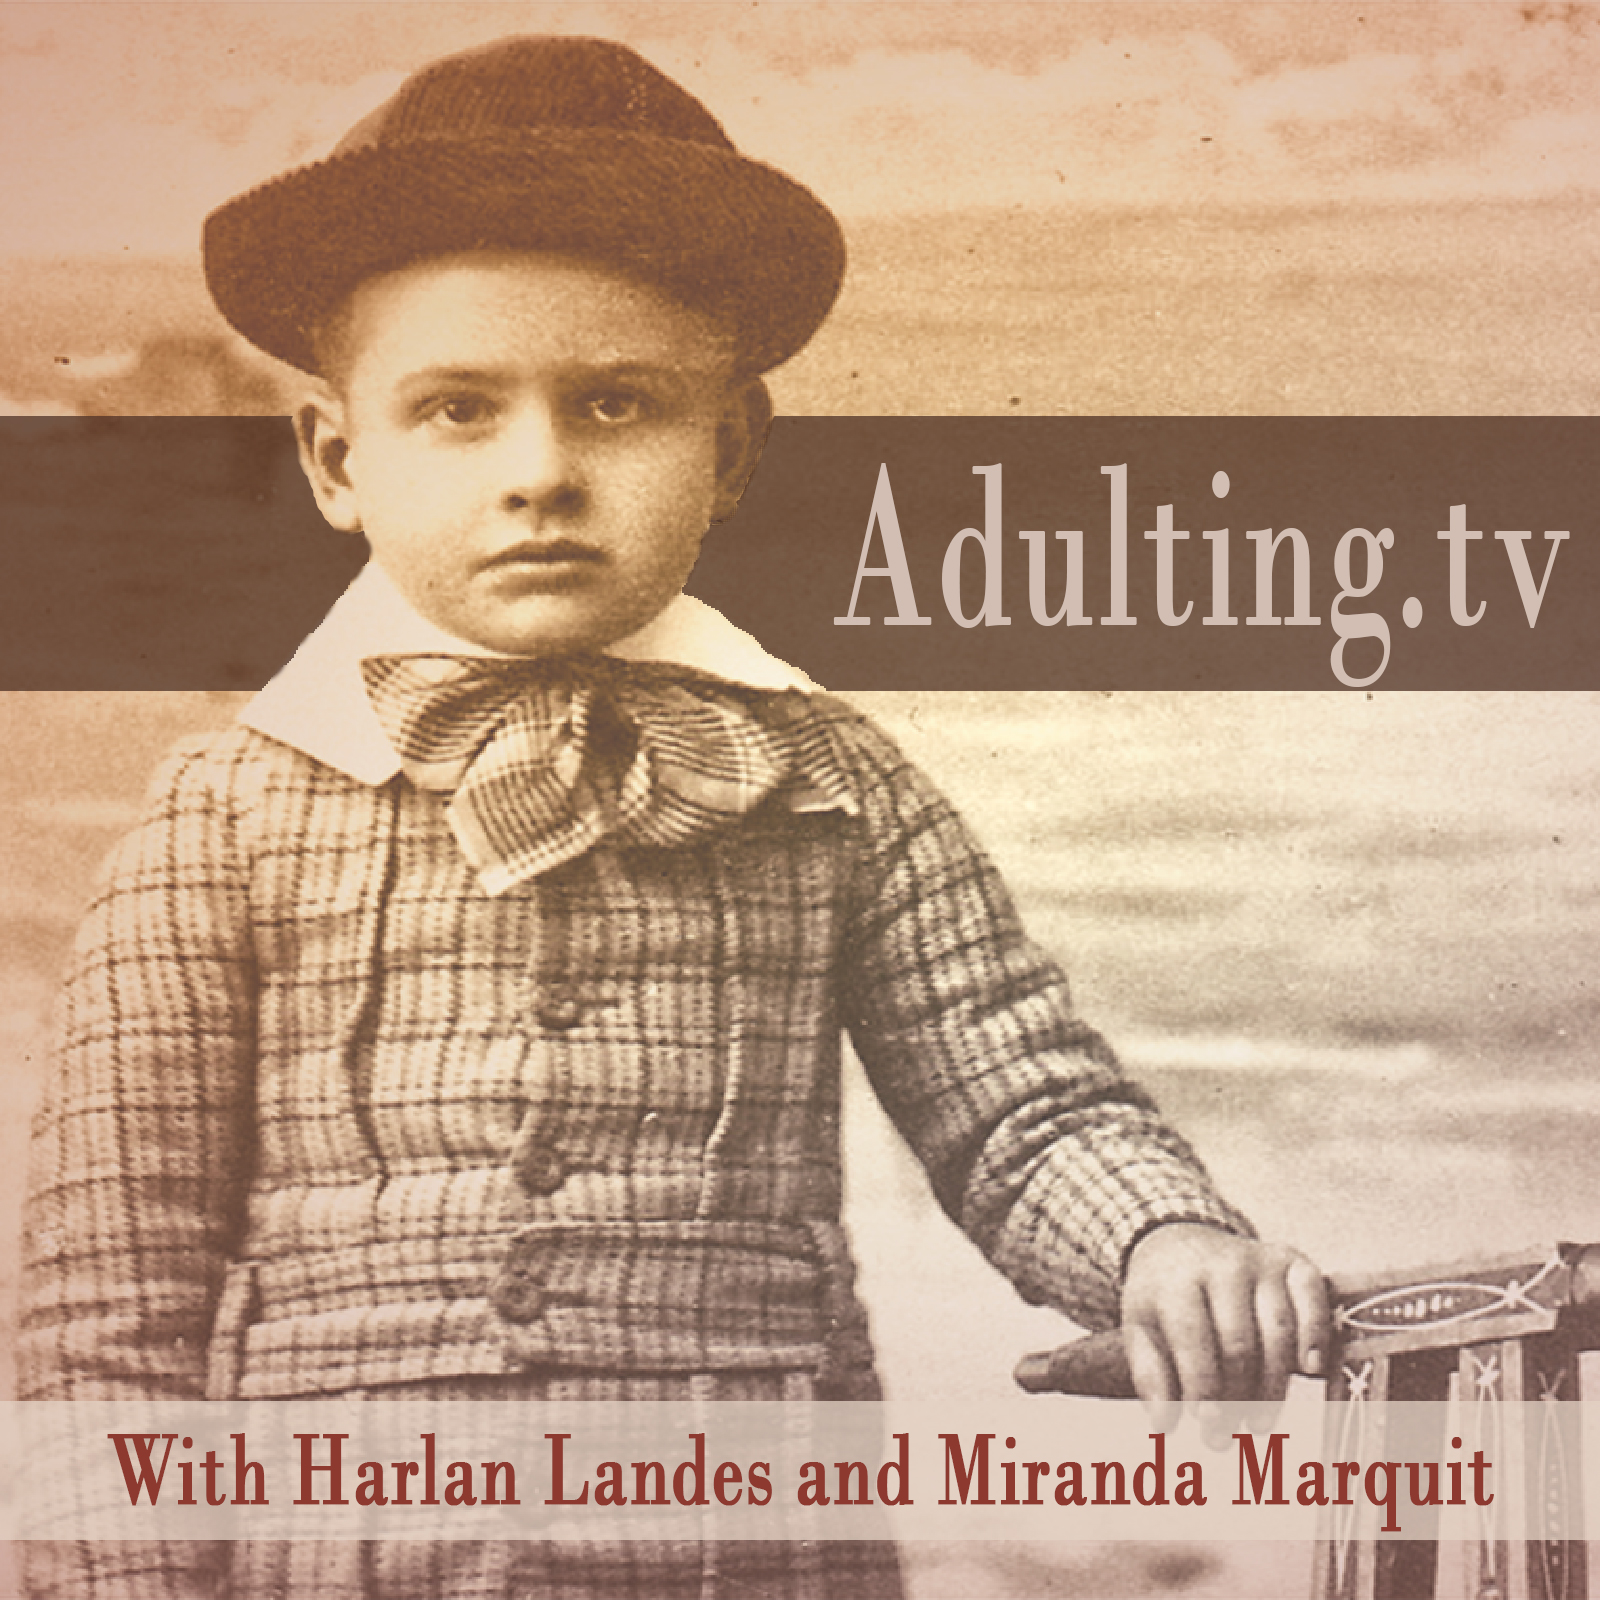 Adulting with Harlan Landes and Miranda Marquit